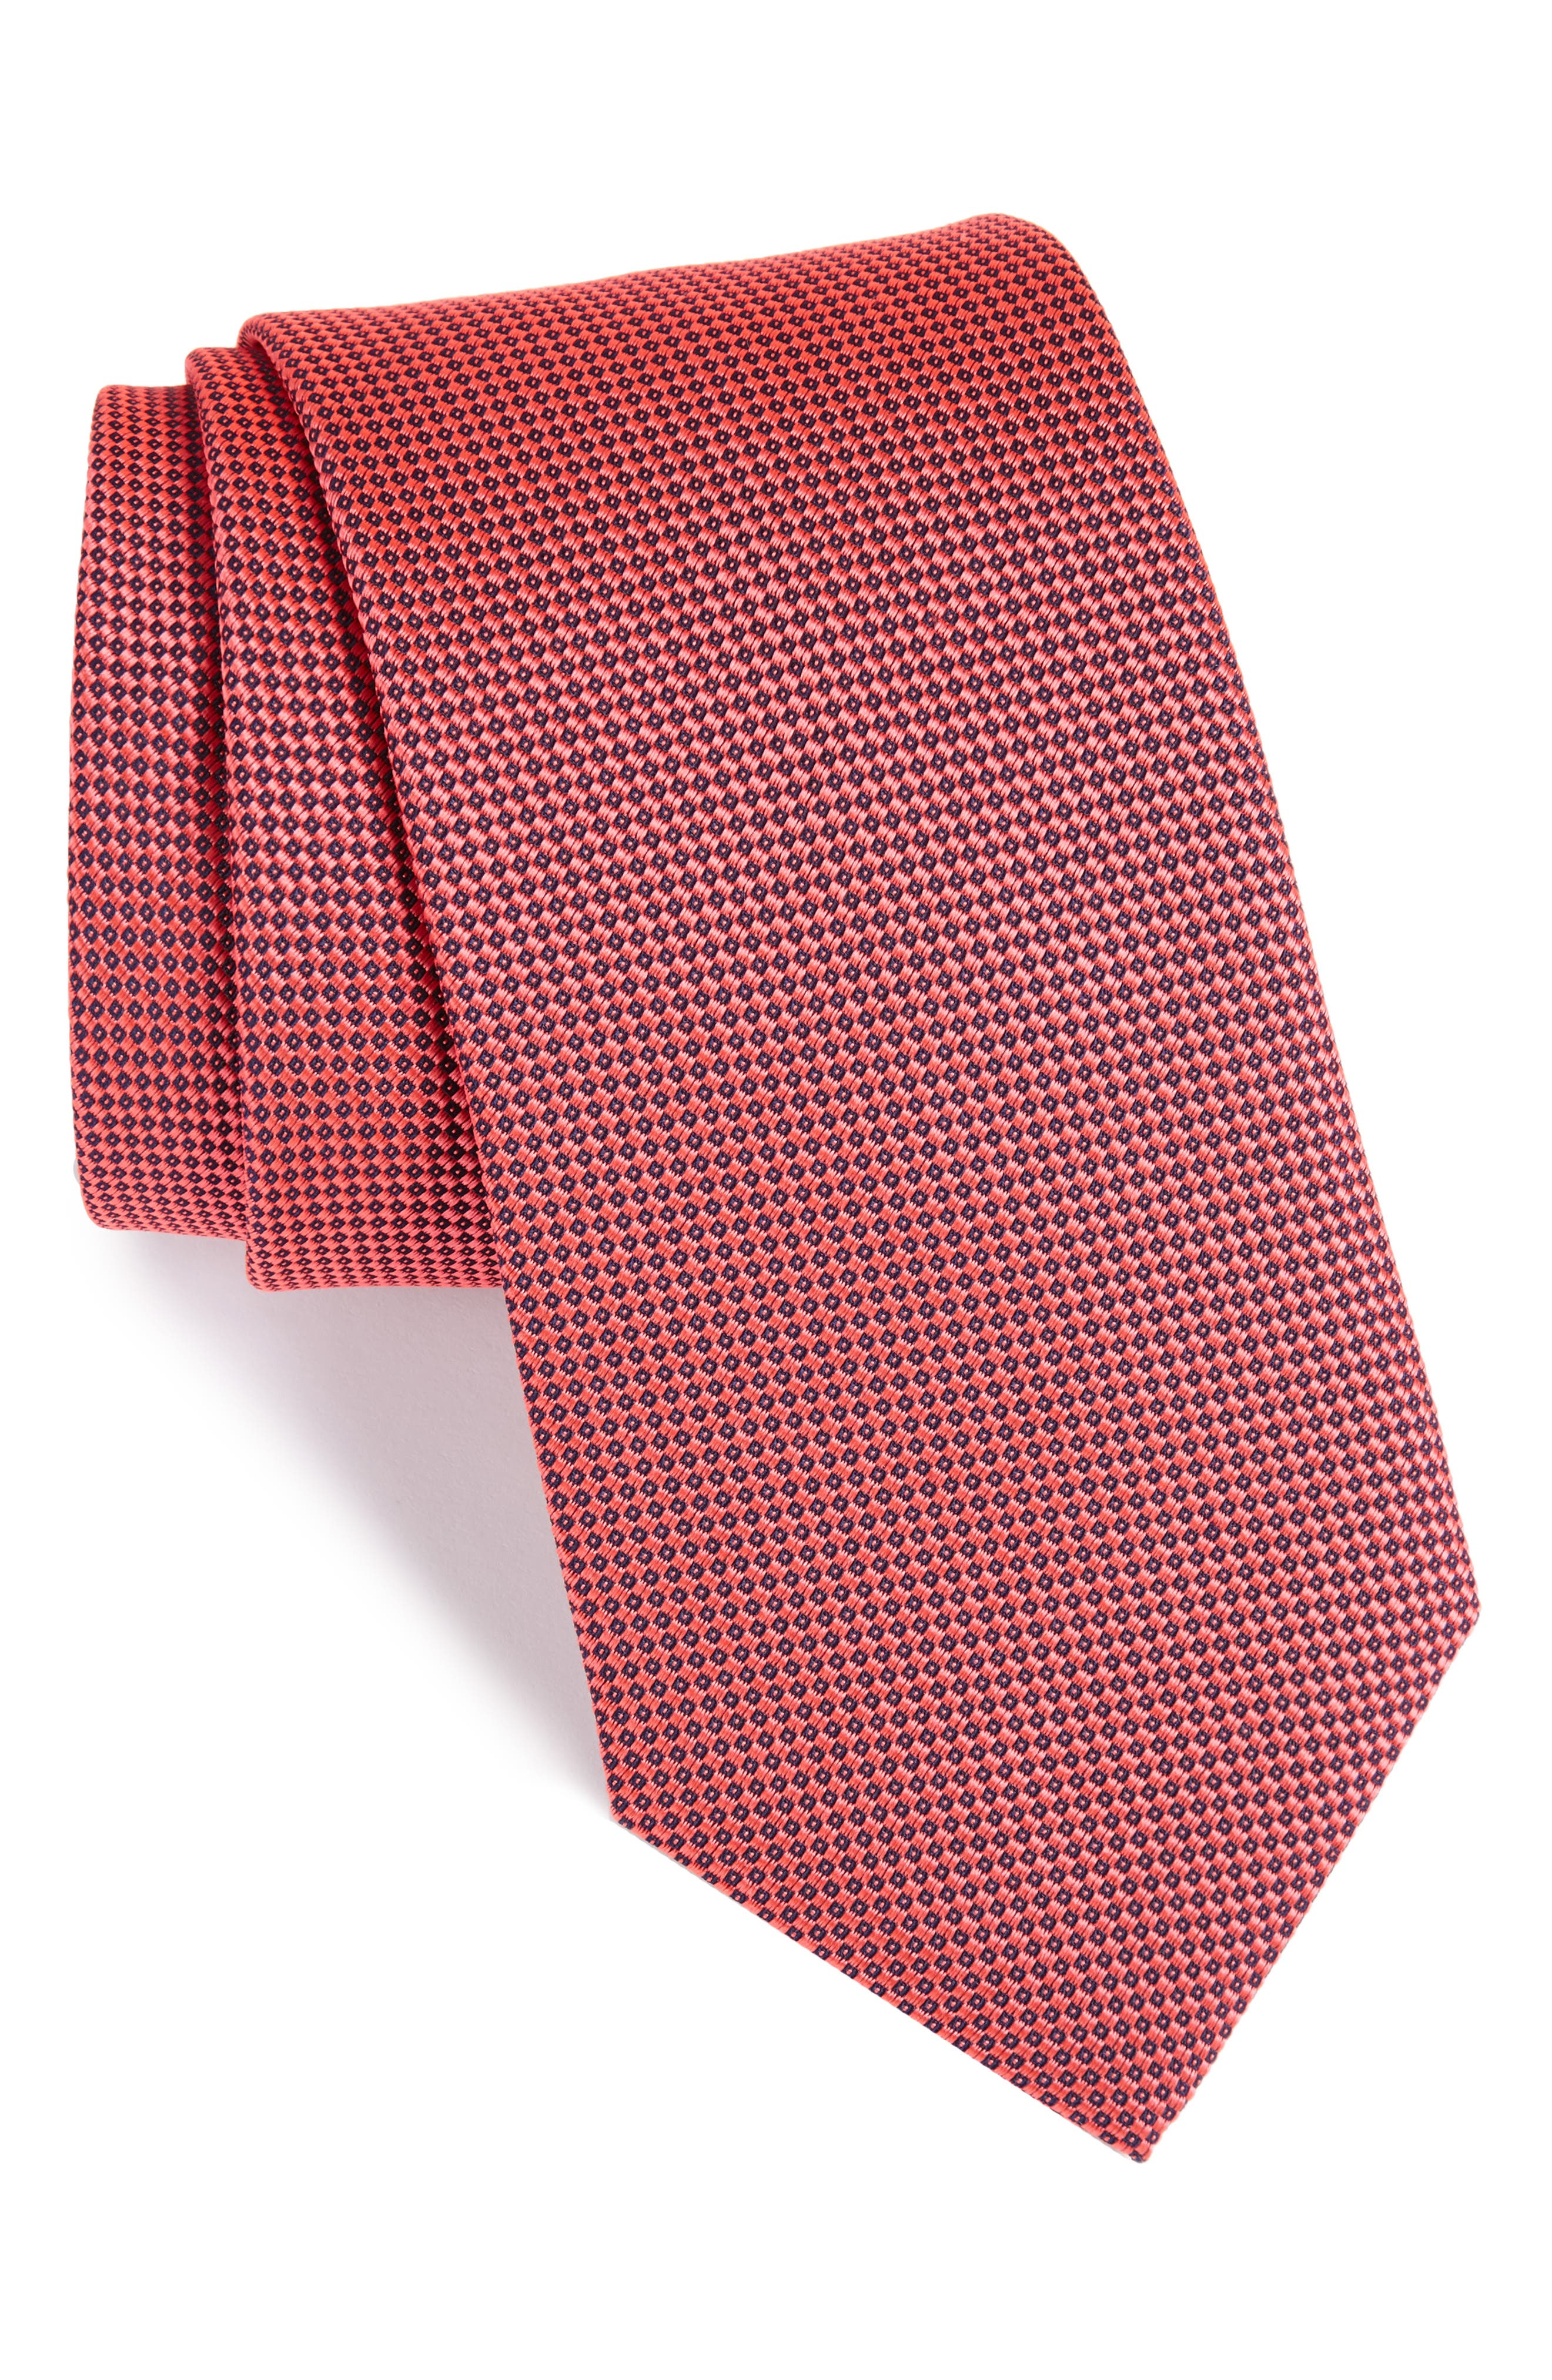 Solid Silk Tie,                         Main,                         color, Pink/ Red